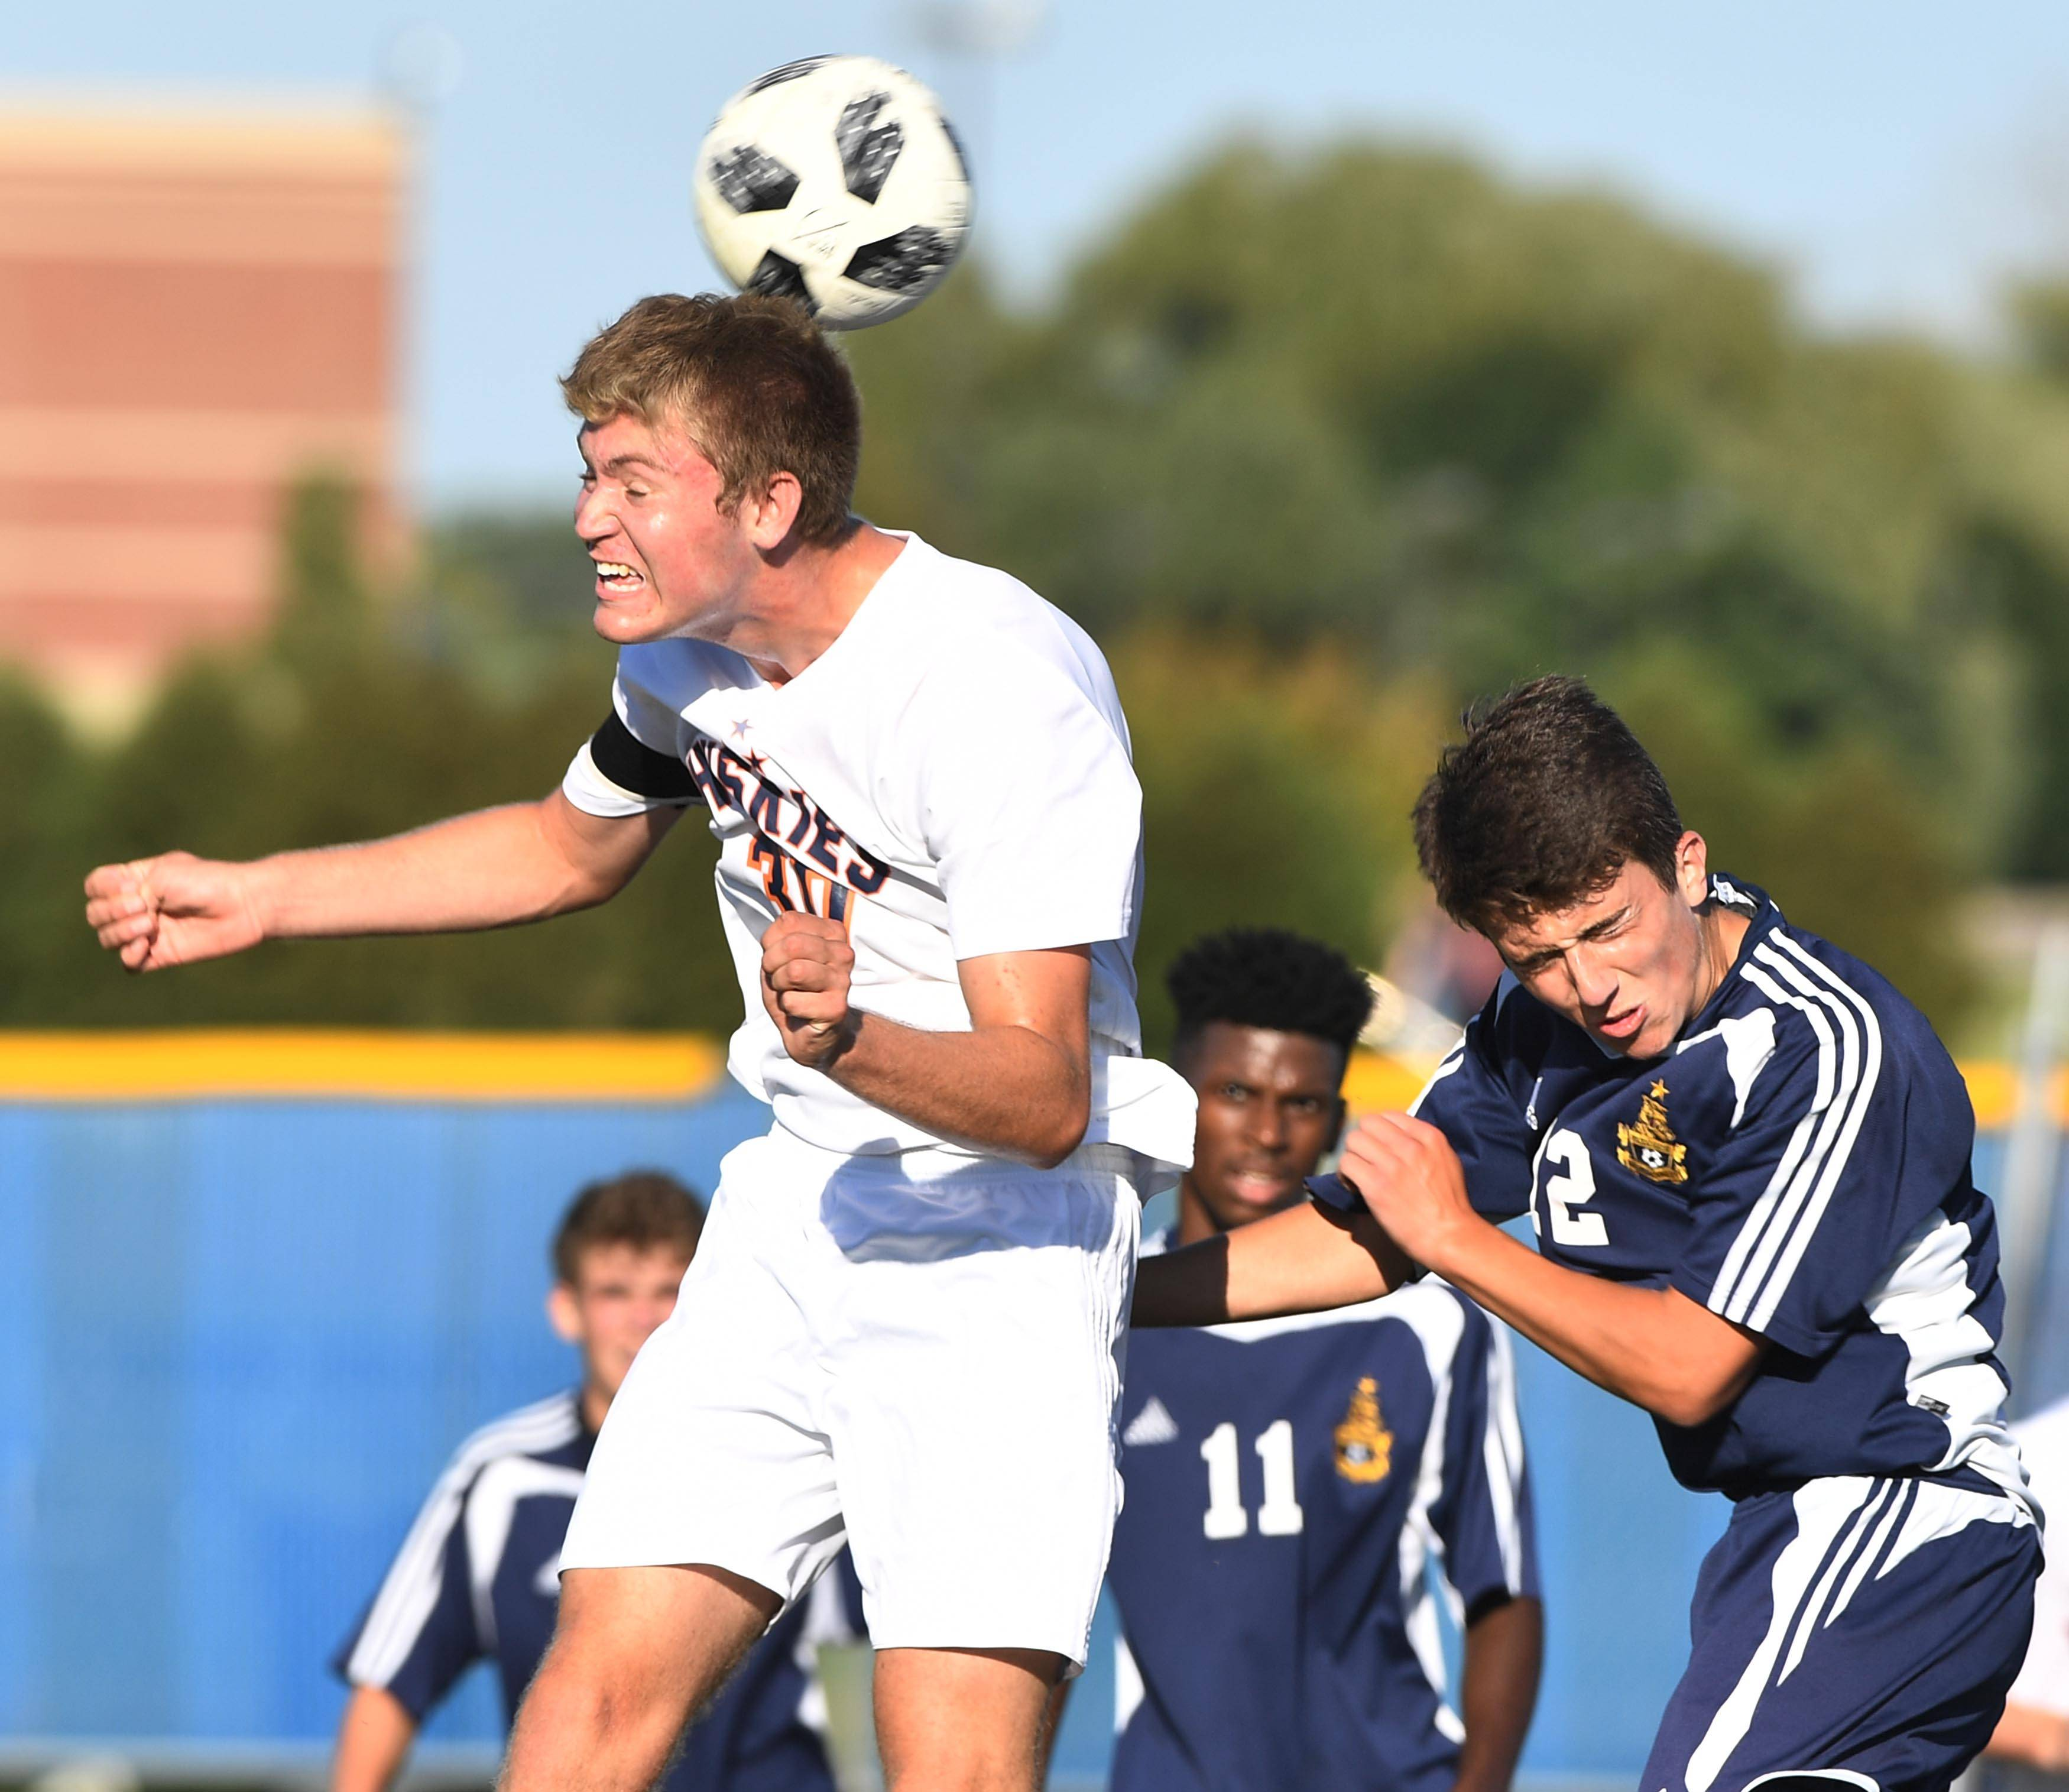 Naperville North's Colin Iverson heads the ball in front of Neuqua Valley's Mav Lehman in a boys soccer game Tuesday in Naperville.